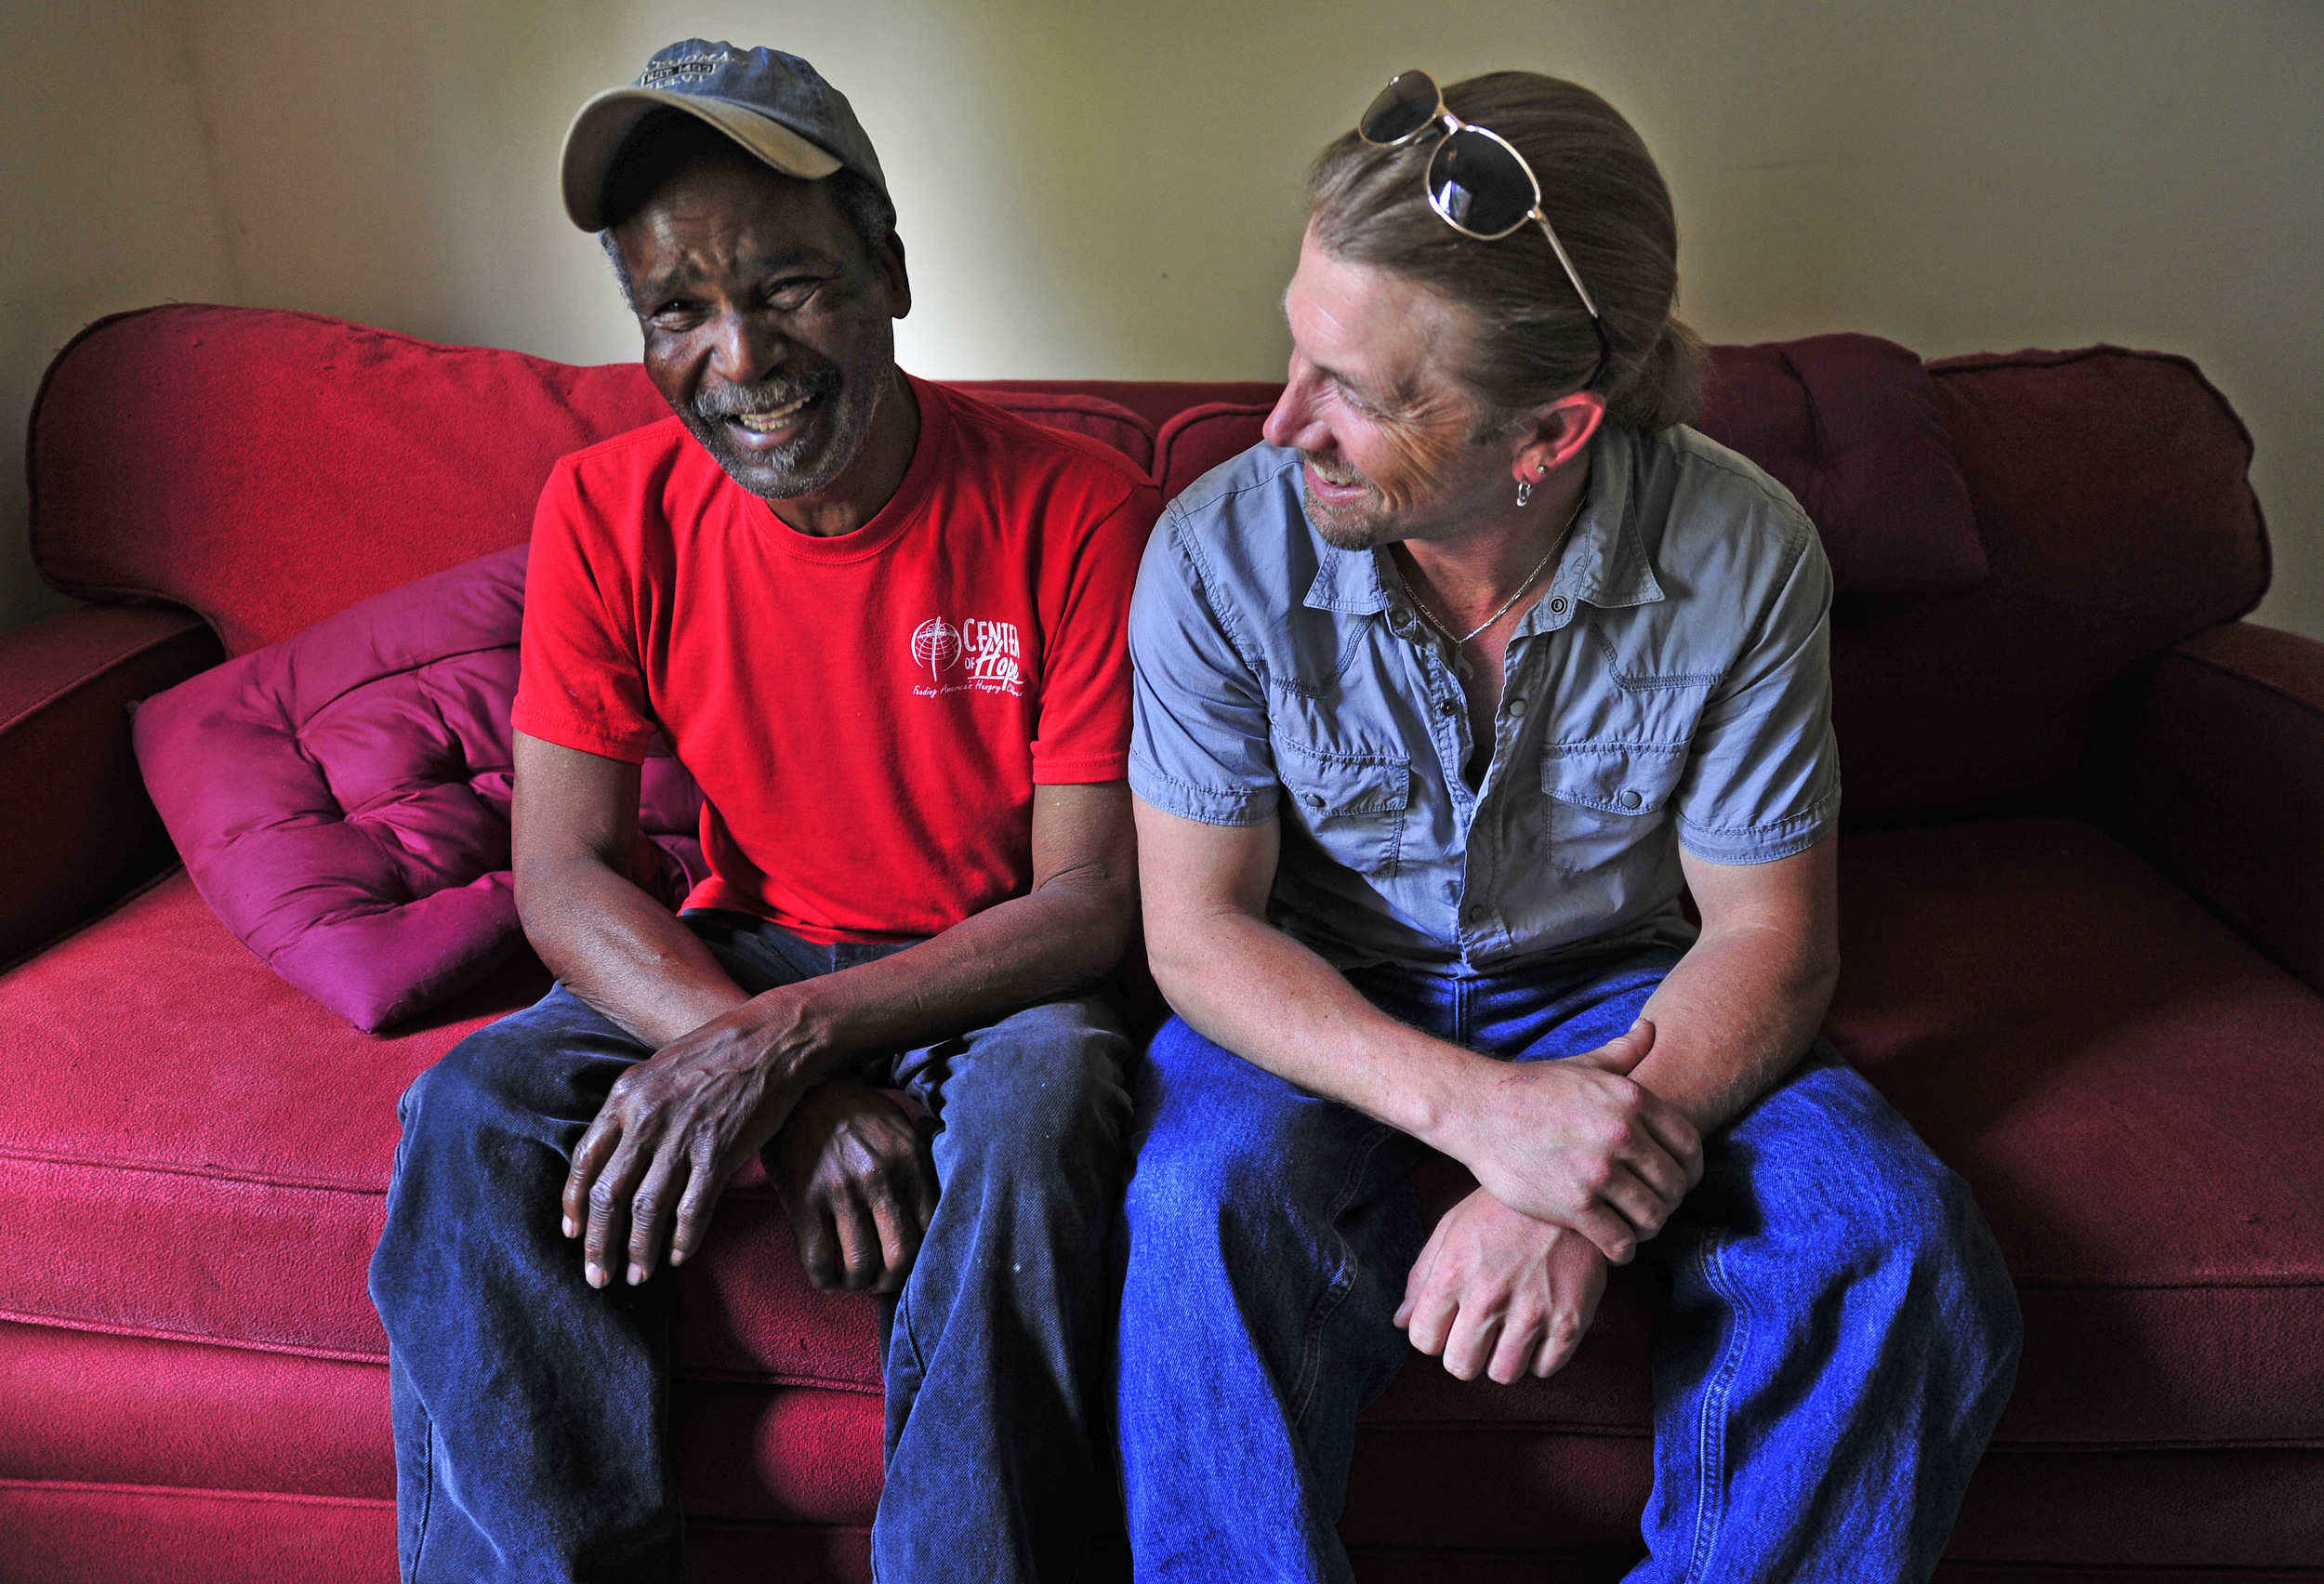 R&B Musician Charlie Fite, 71 shares a laugh with local drummer Tom Larson at Fite's house, destroyed by the May 2010 flood May 11, 2011 in Nashville, Tenn. Larson has led efforts to help him rebuild, doing cleanup and construction with friends and holding fundraising concerts. After one year, Fite's house is 60% rebuilt.